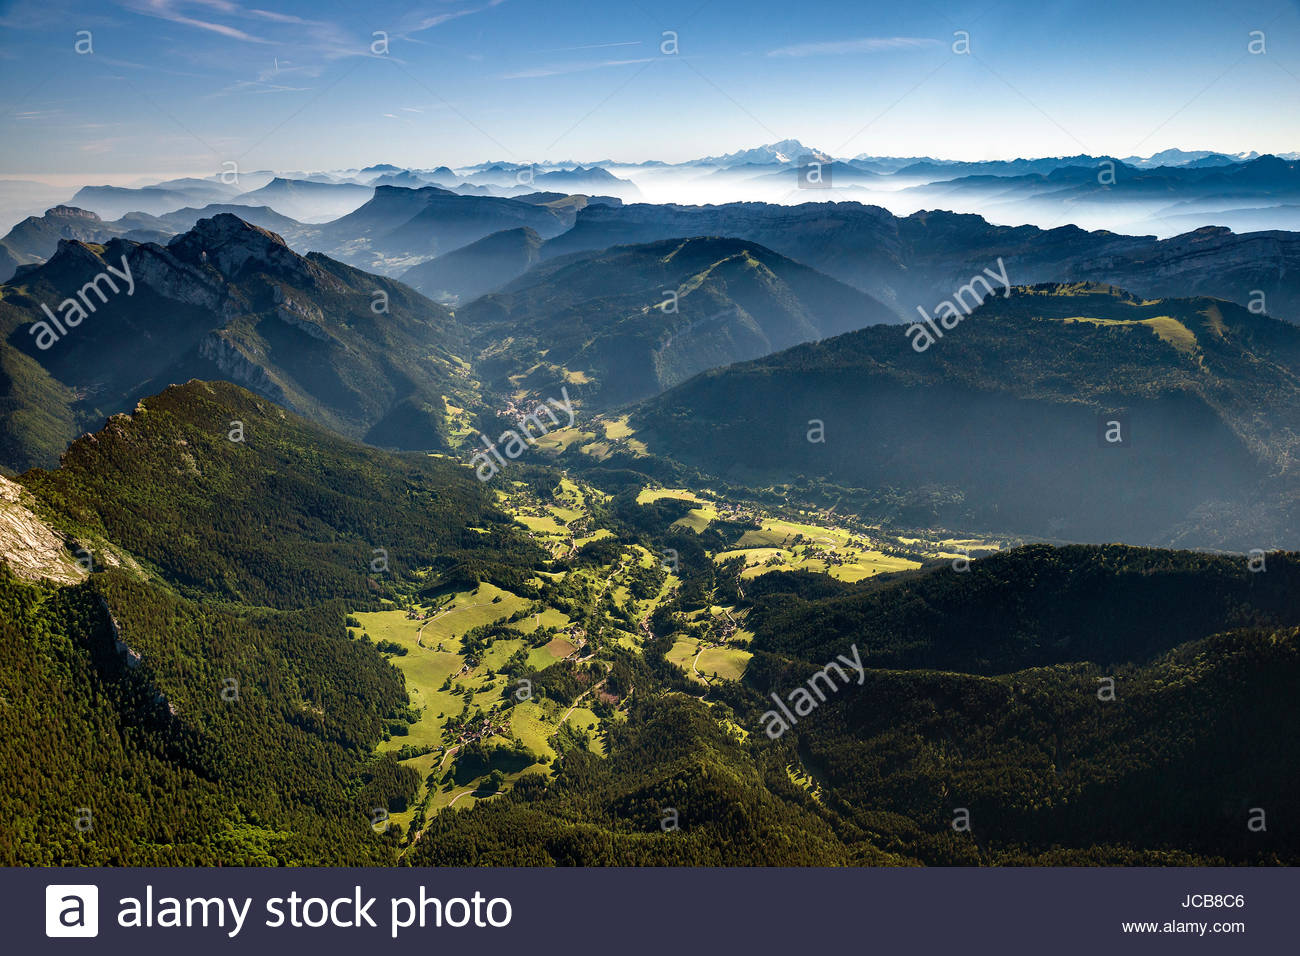 Aerial view of Saint-Pierre and Saint-Hugues-de-Chartreuse in the Chartreuse mountain range and natural park - Stock Image